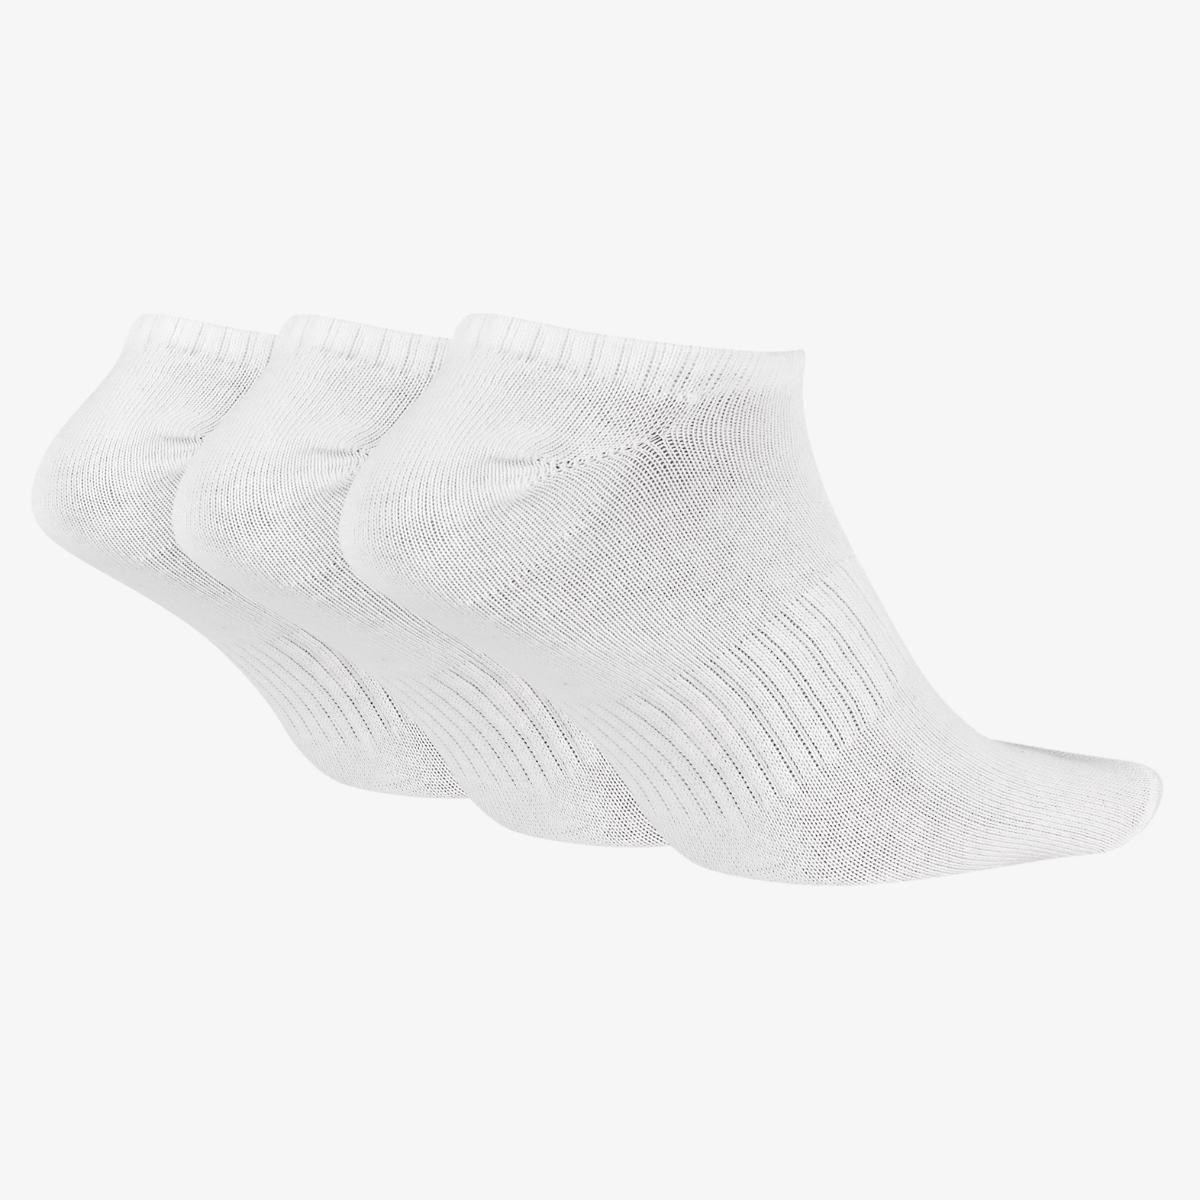 NIKE Носки EVERYDAY LIGHTWEIGHT NO-SHOW, 3 пары, white. Фото N2